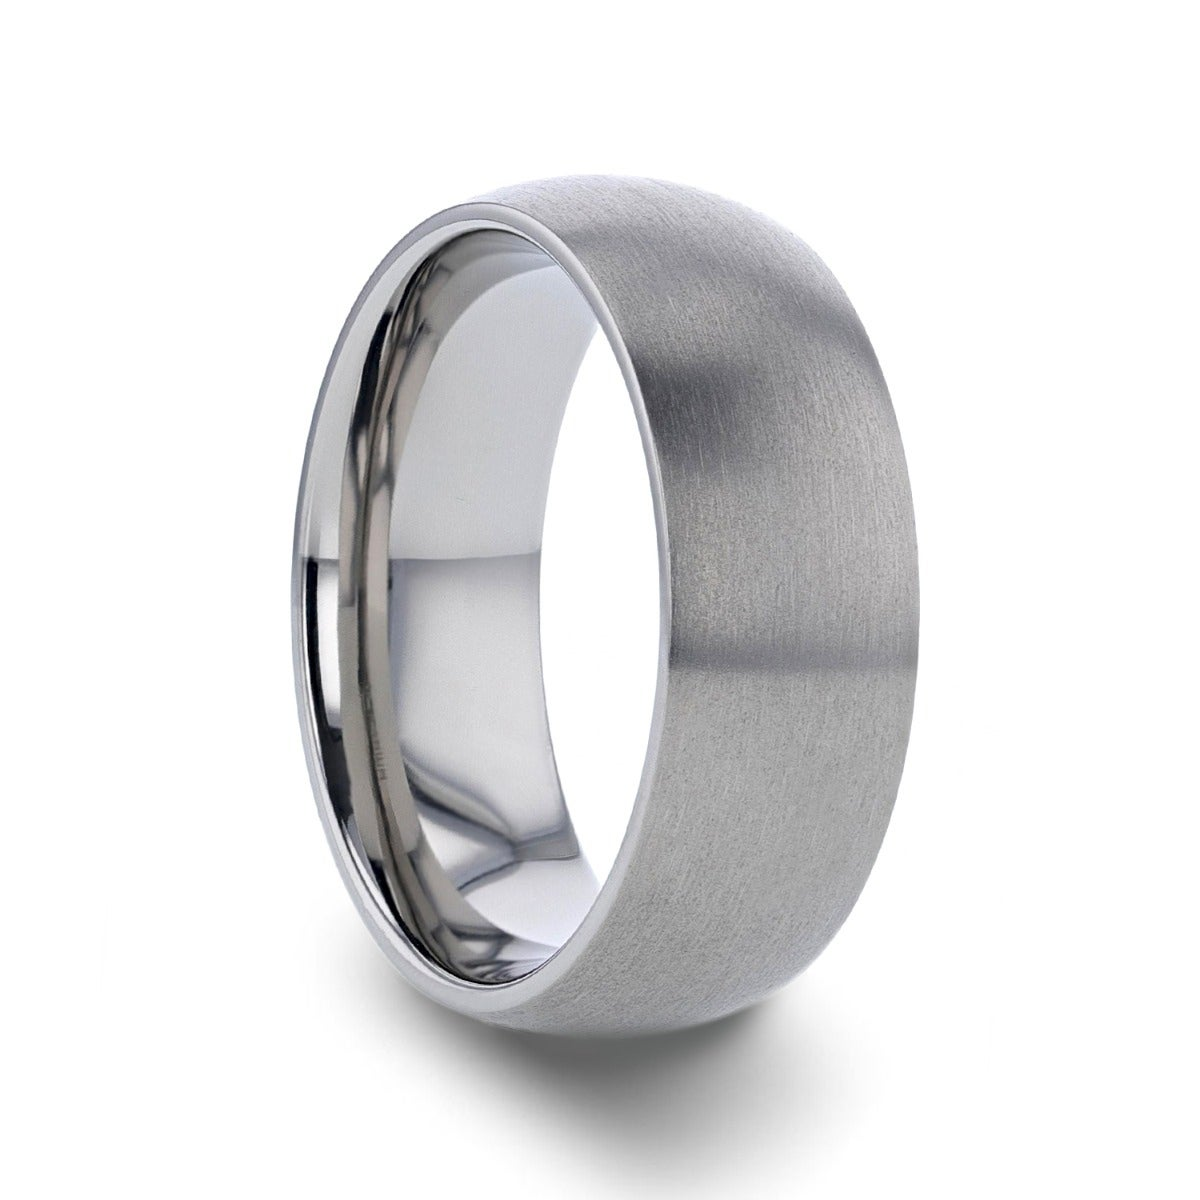 It is a photo of Thorsten Eris Titanium Rings for Men Lightweight Titanium Comfort Fit Titanium Brushed Finish Domed Wedding Band - 42 mm